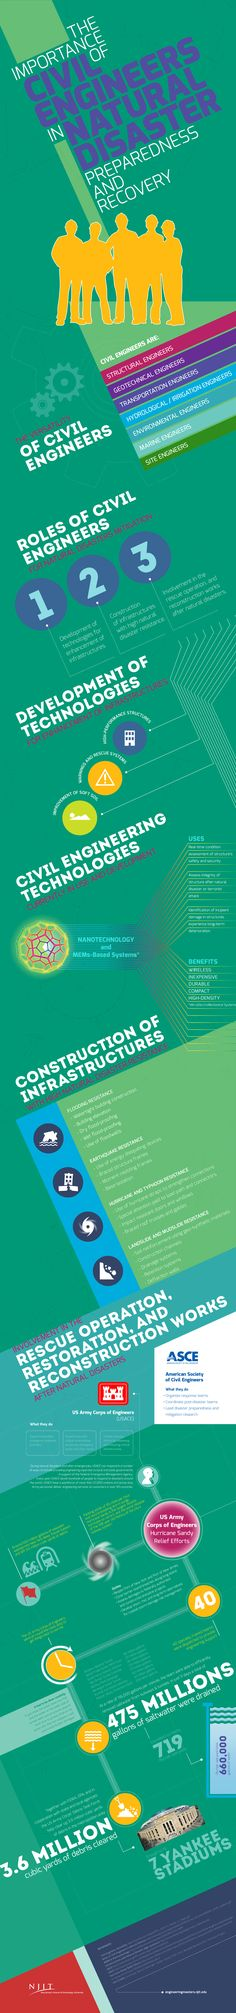 Cool infographic of the role of engineers in disaster preparedness and risk reduction